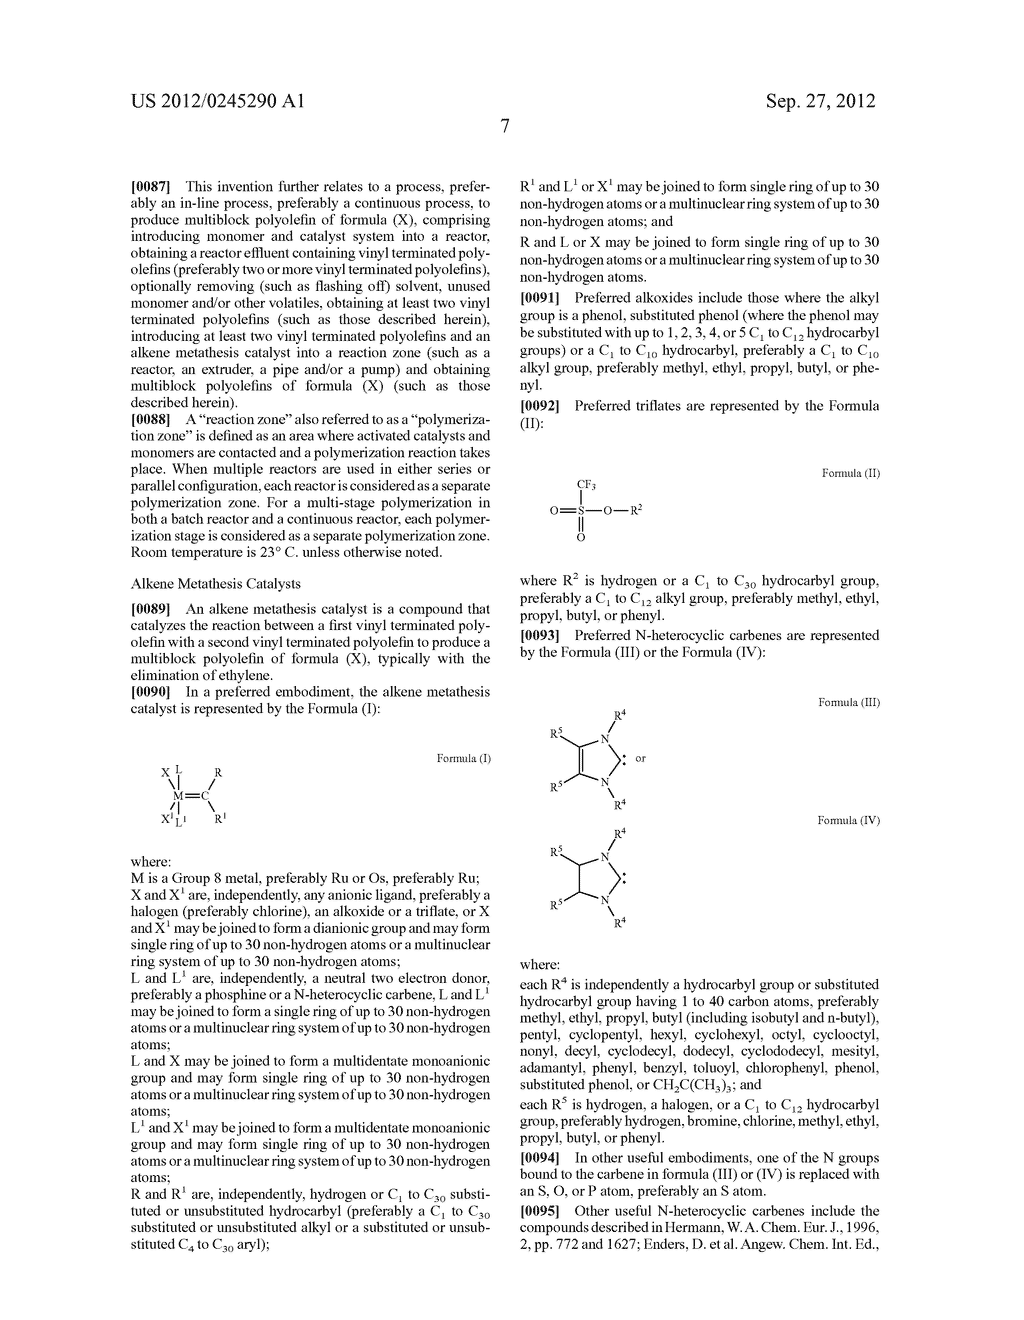 Diblock Copolymers Prepared by Cross Metathesis - diagram, schematic, and image 15